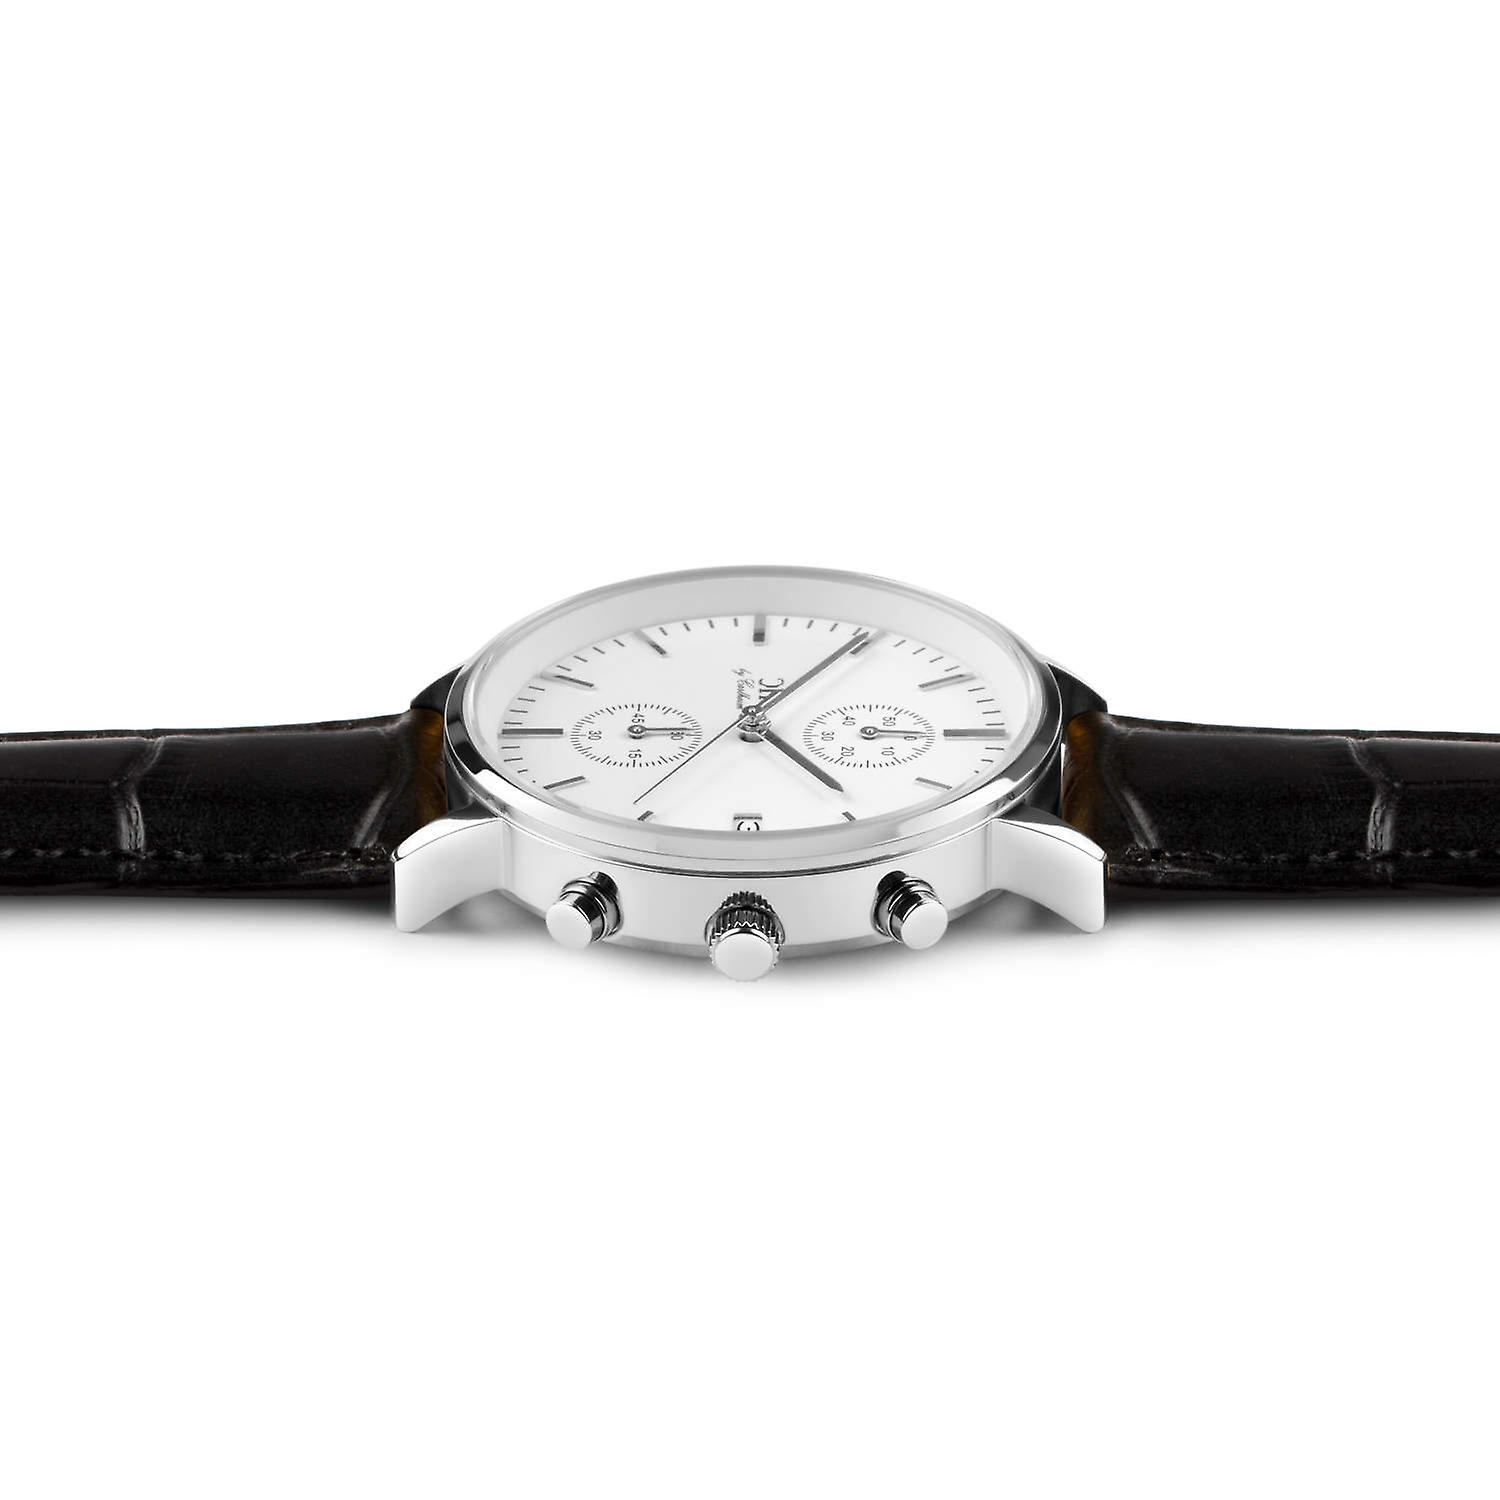 Carlheim | Wristwatches | Chronograph | Langeland | Scandinavian design